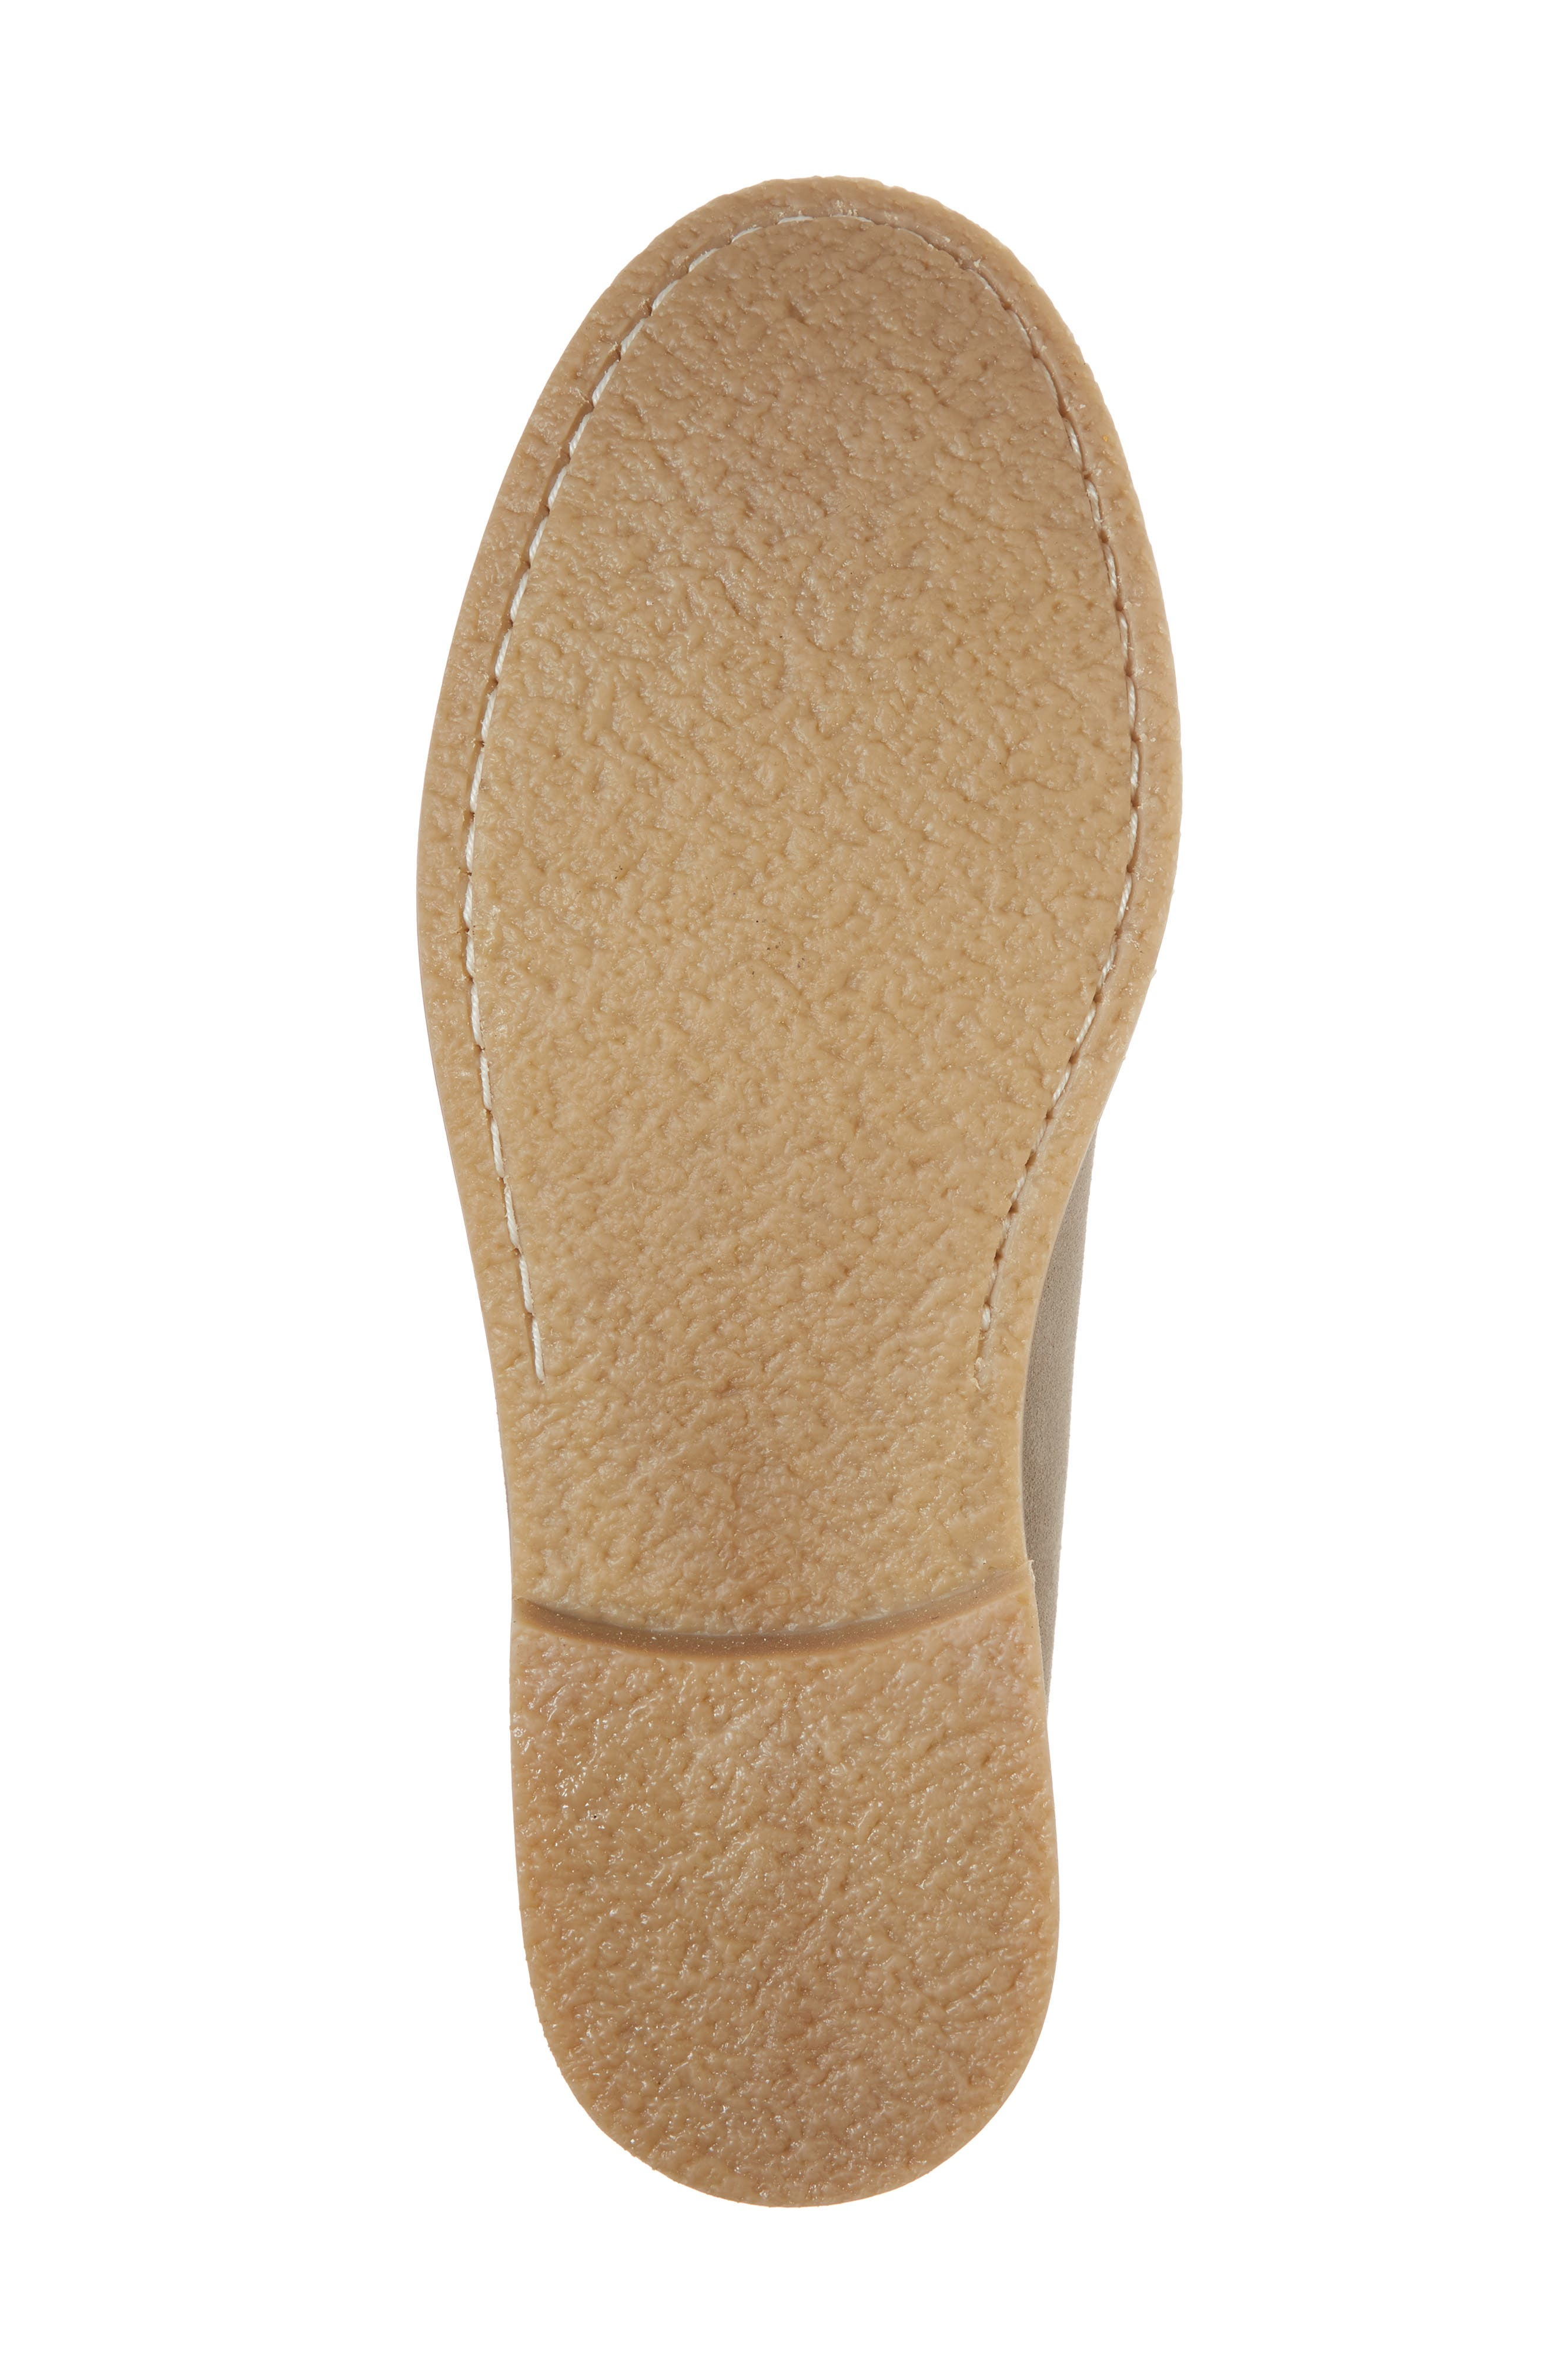 Wayne Textured Penny Loafer,                             Alternate thumbnail 6, color,                             EARTH BEIGE